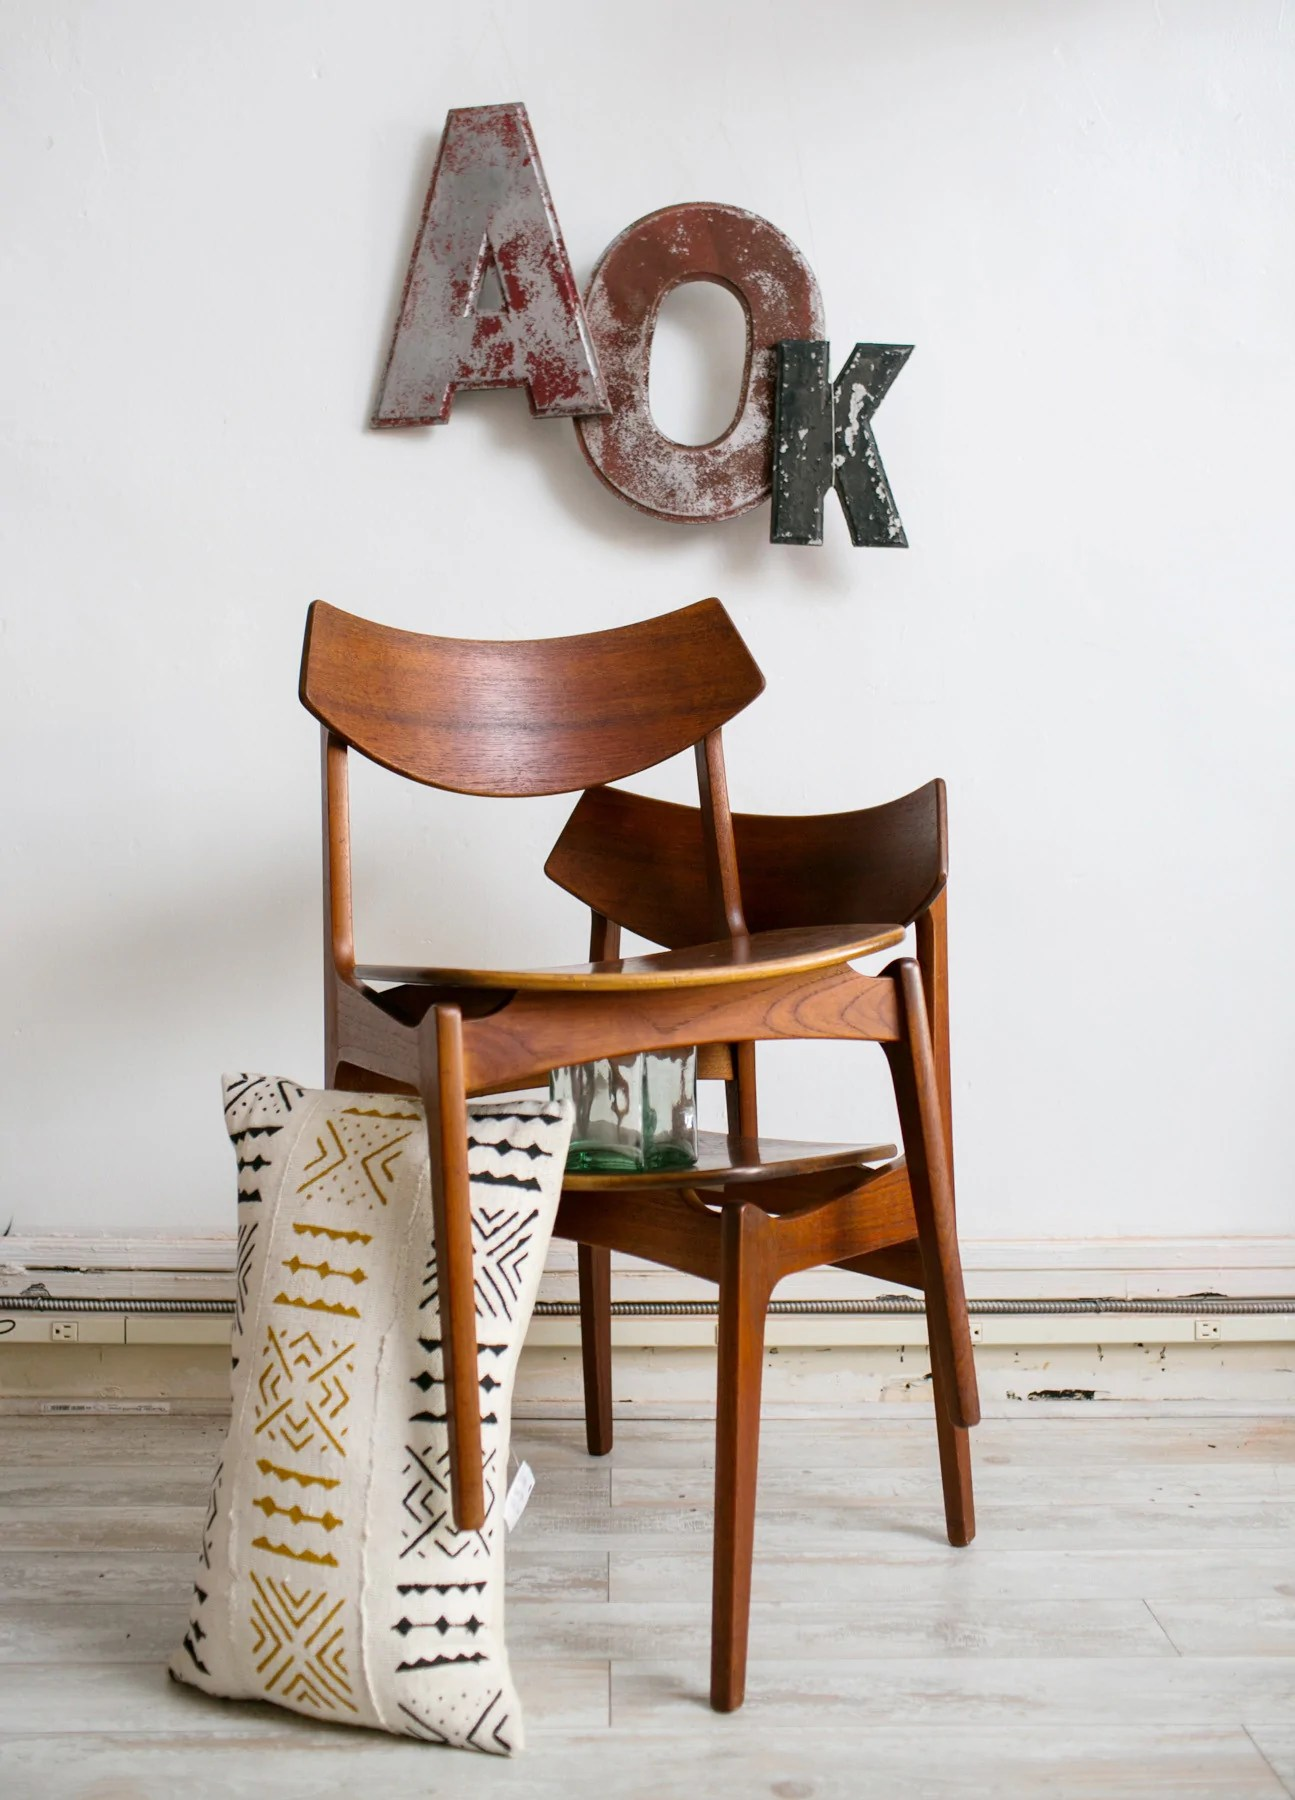 erik buck chairs dining chair upholstery fabric mid century modern teak by funden schmidt madsen wood side barefoot dwelling